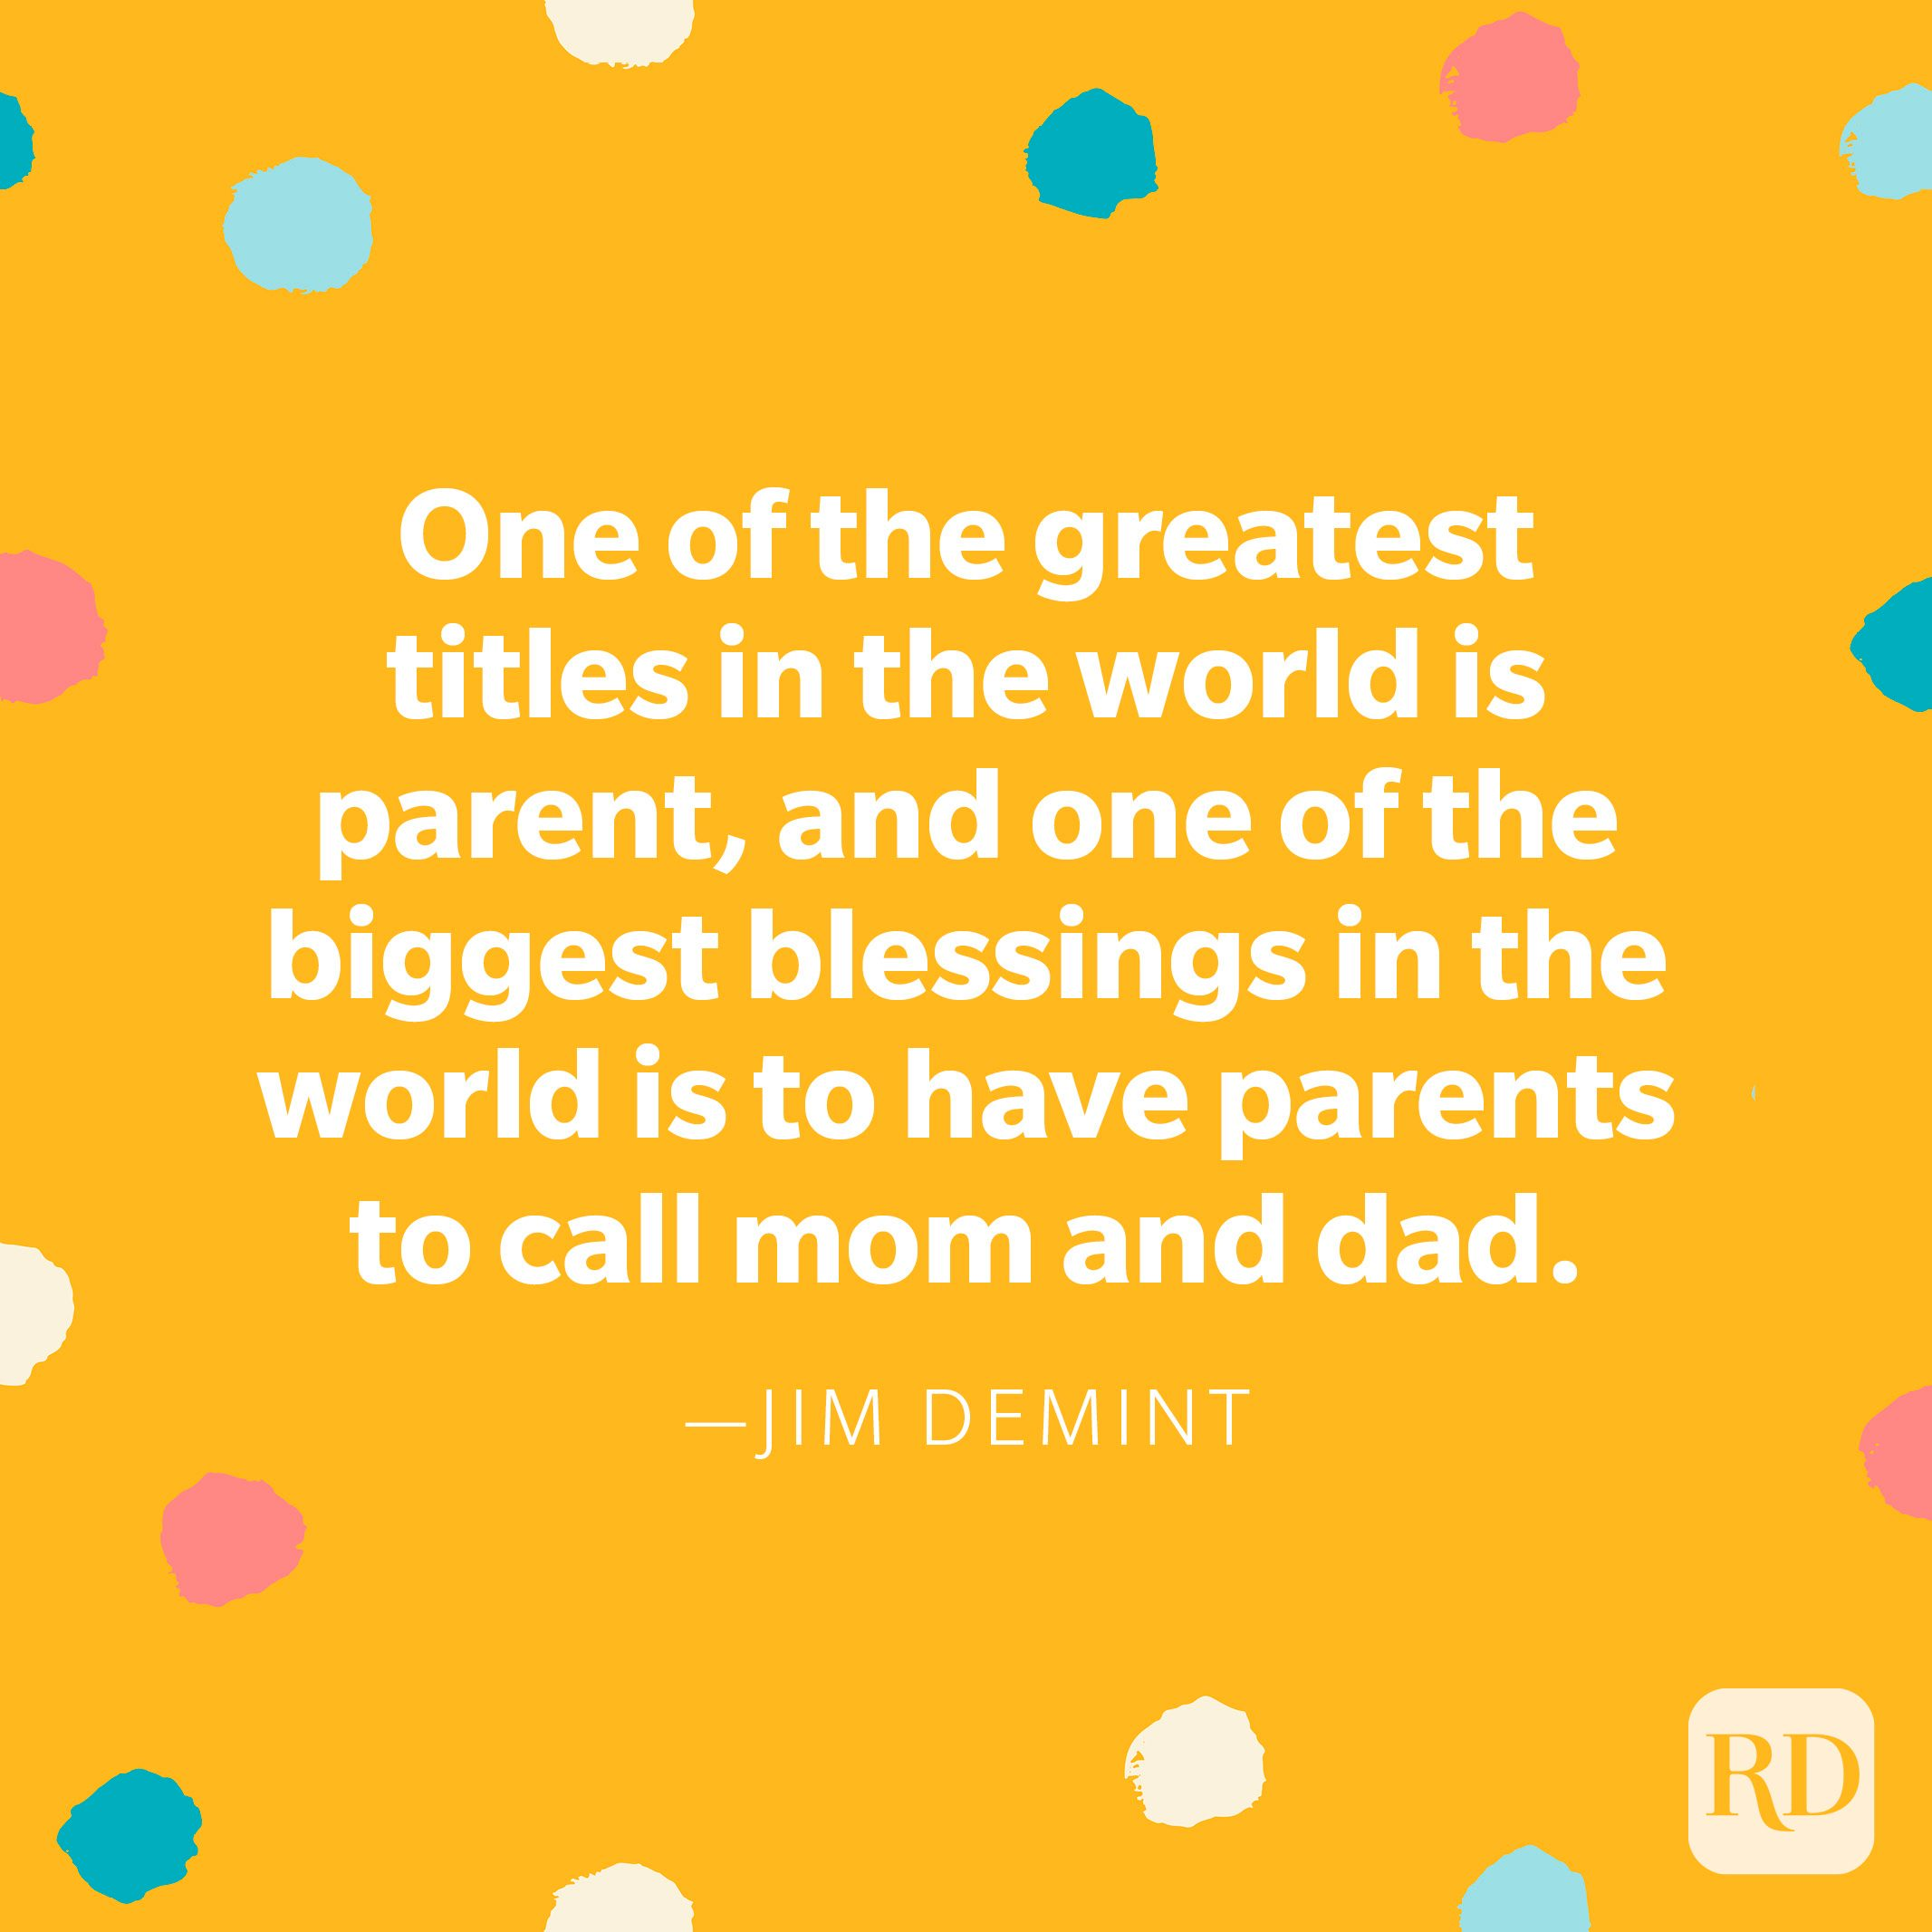 """""""One of the greatest titles in the world is parent, and one of the biggest blessings in the world is to have parents to call mom and dad."""" – Jim DeMint"""